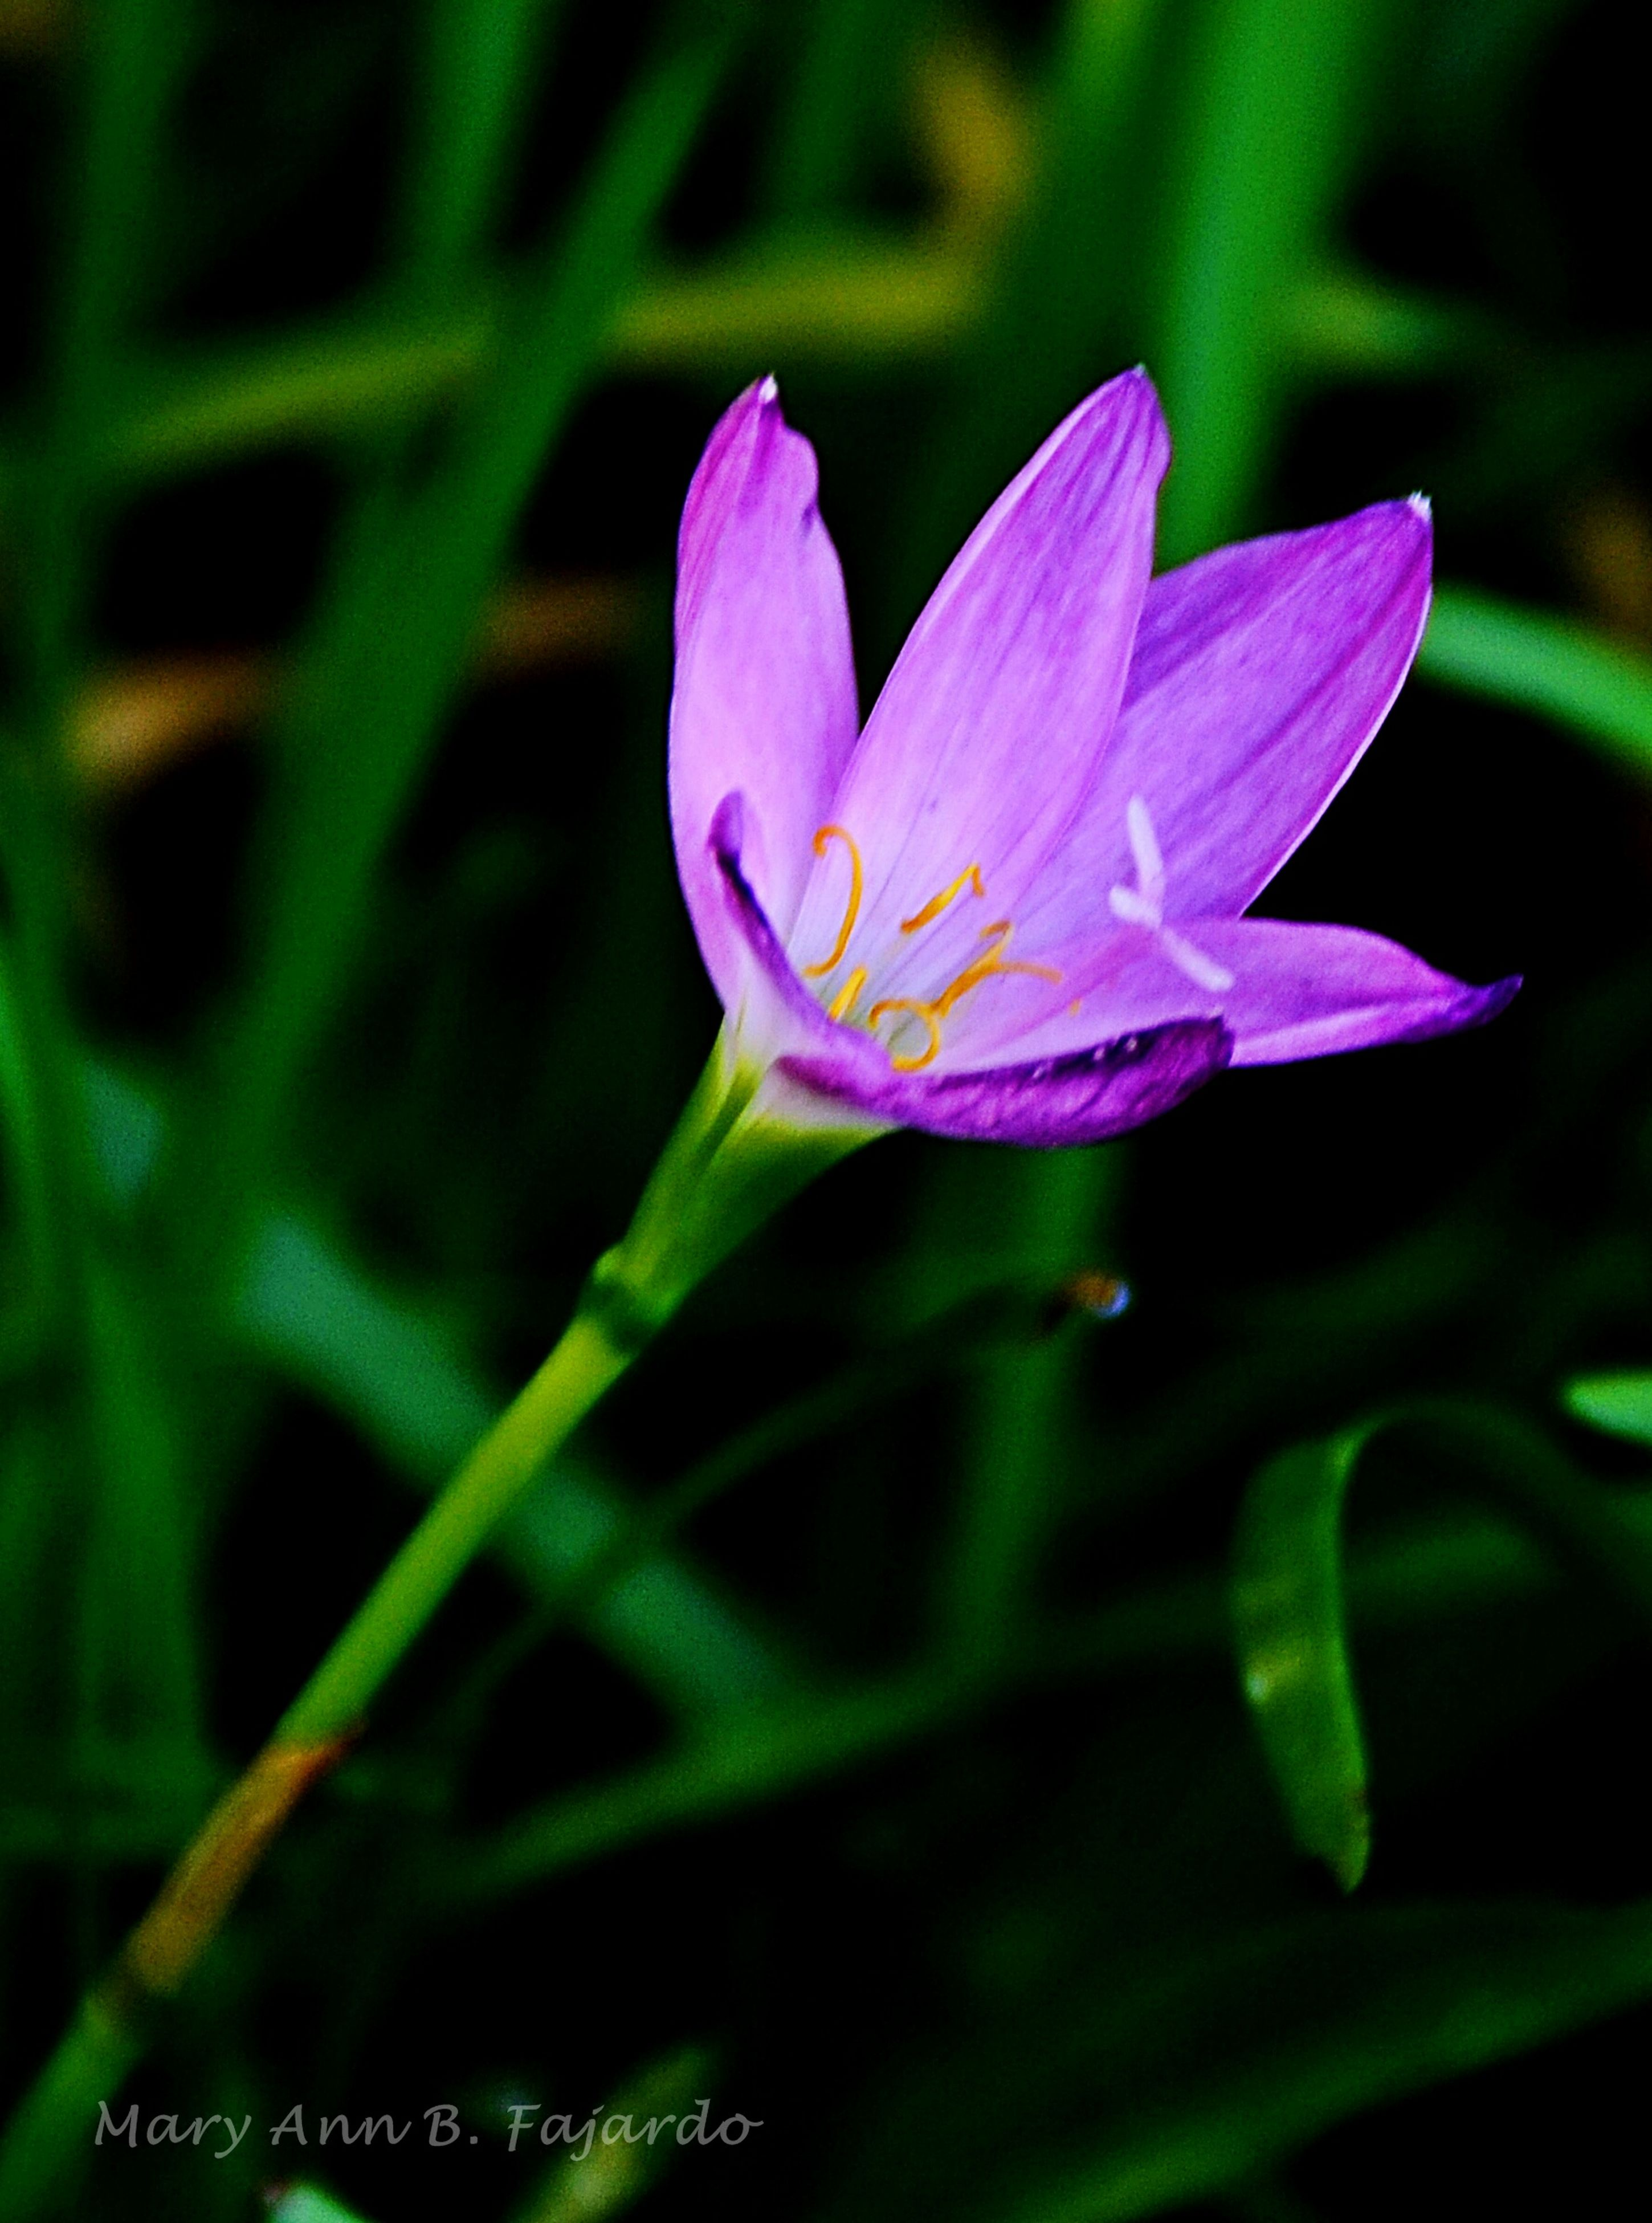 flower, petal, freshness, fragility, flower head, single flower, growth, beauty in nature, close-up, focus on foreground, plant, nature, blooming, pink color, purple, stem, in bloom, pollen, outdoors, selective focus